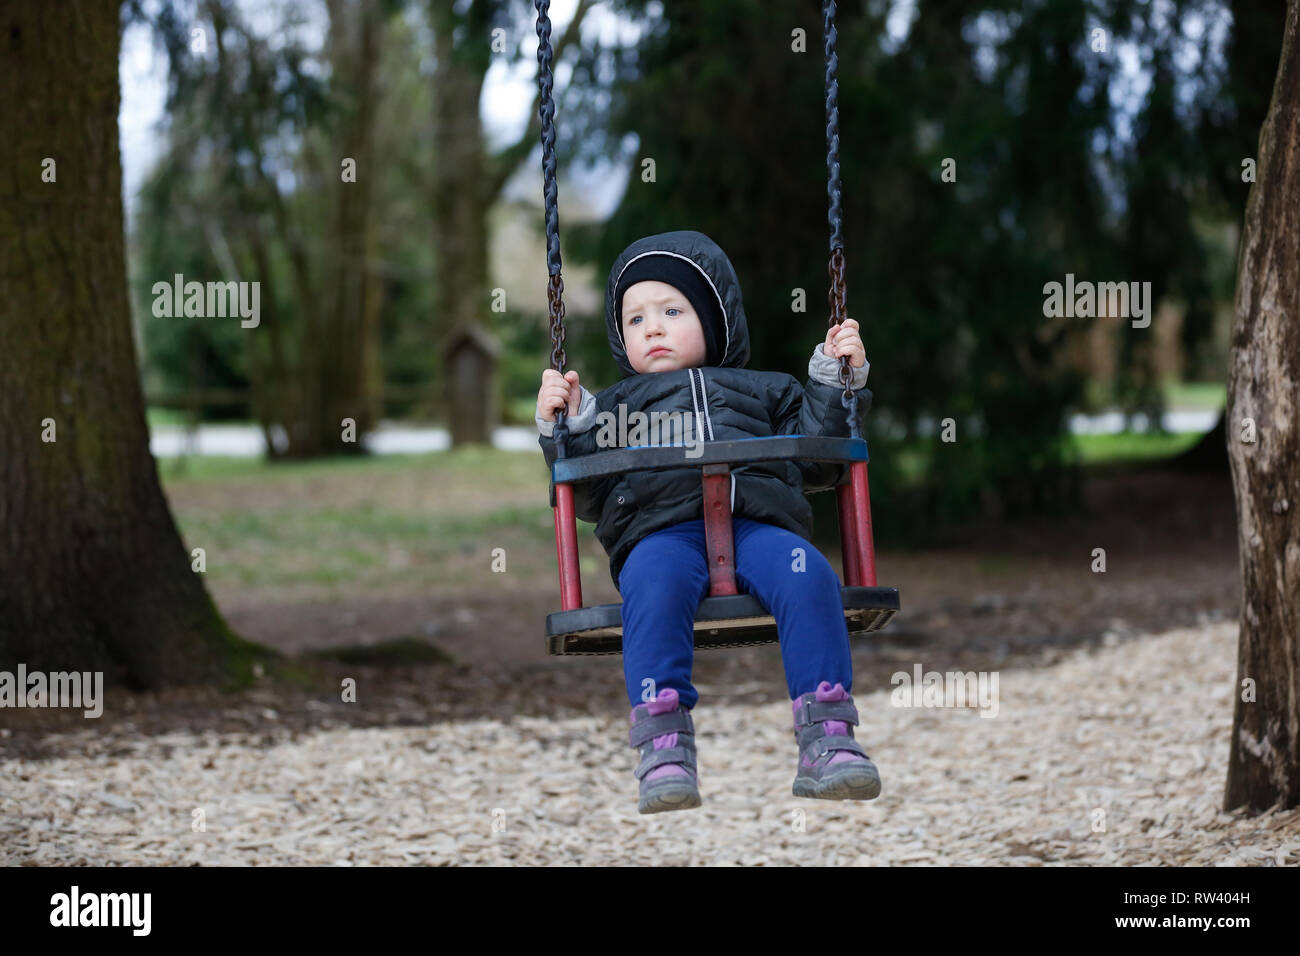 Sad, worried little boy swinging by himself, left alone unattended, looking for parents. Childhood, parenting, neglect and emotions concept. - Stock Image